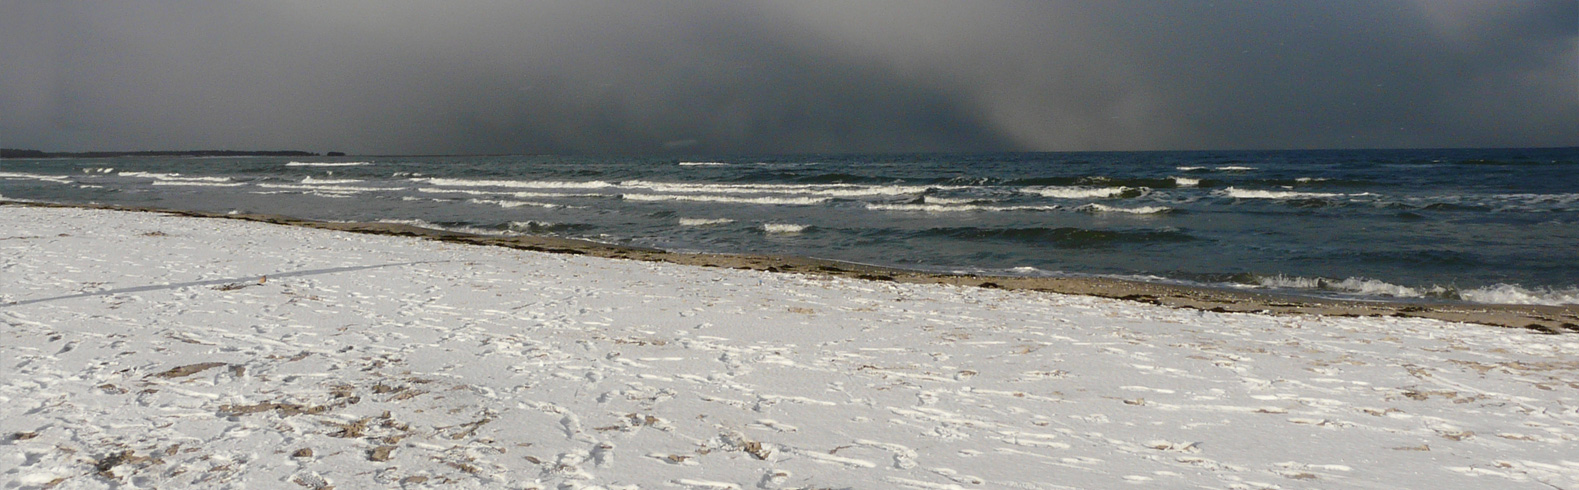 Winterstrand von Prerow